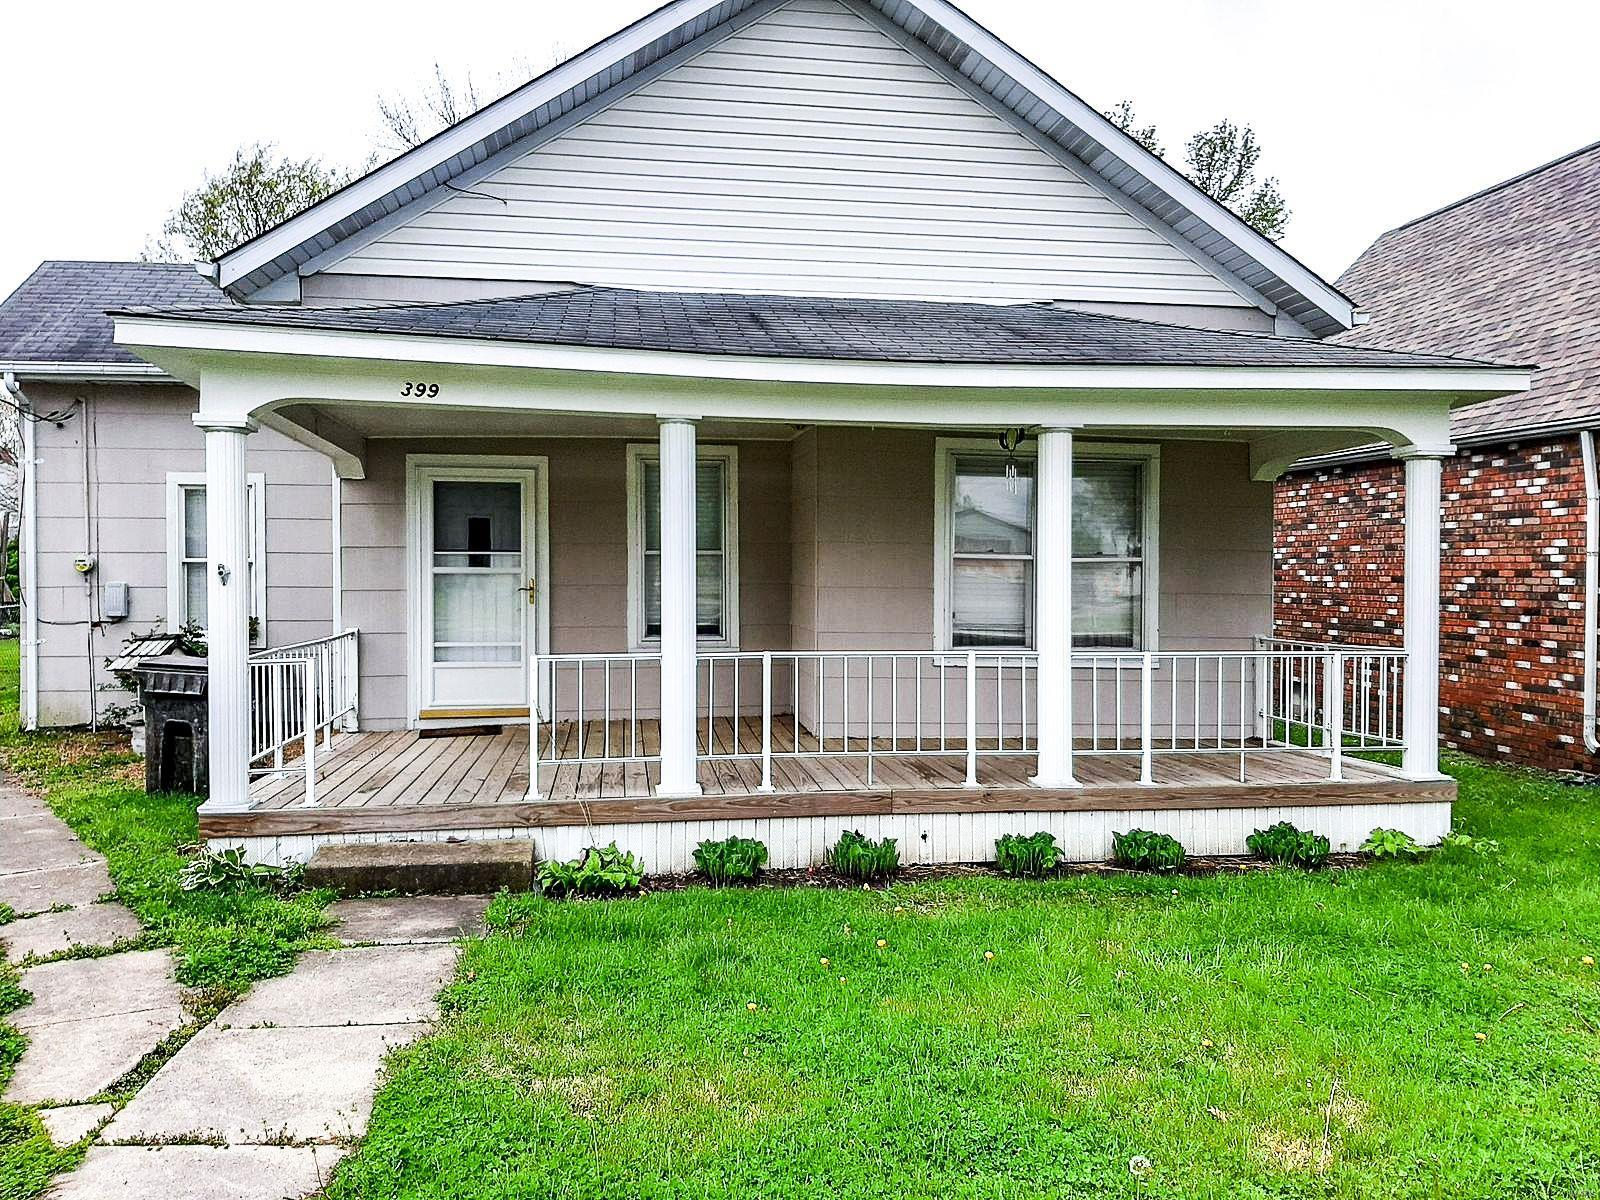 399 S 2nd Street Property Photo - Livingston, IL real estate listing